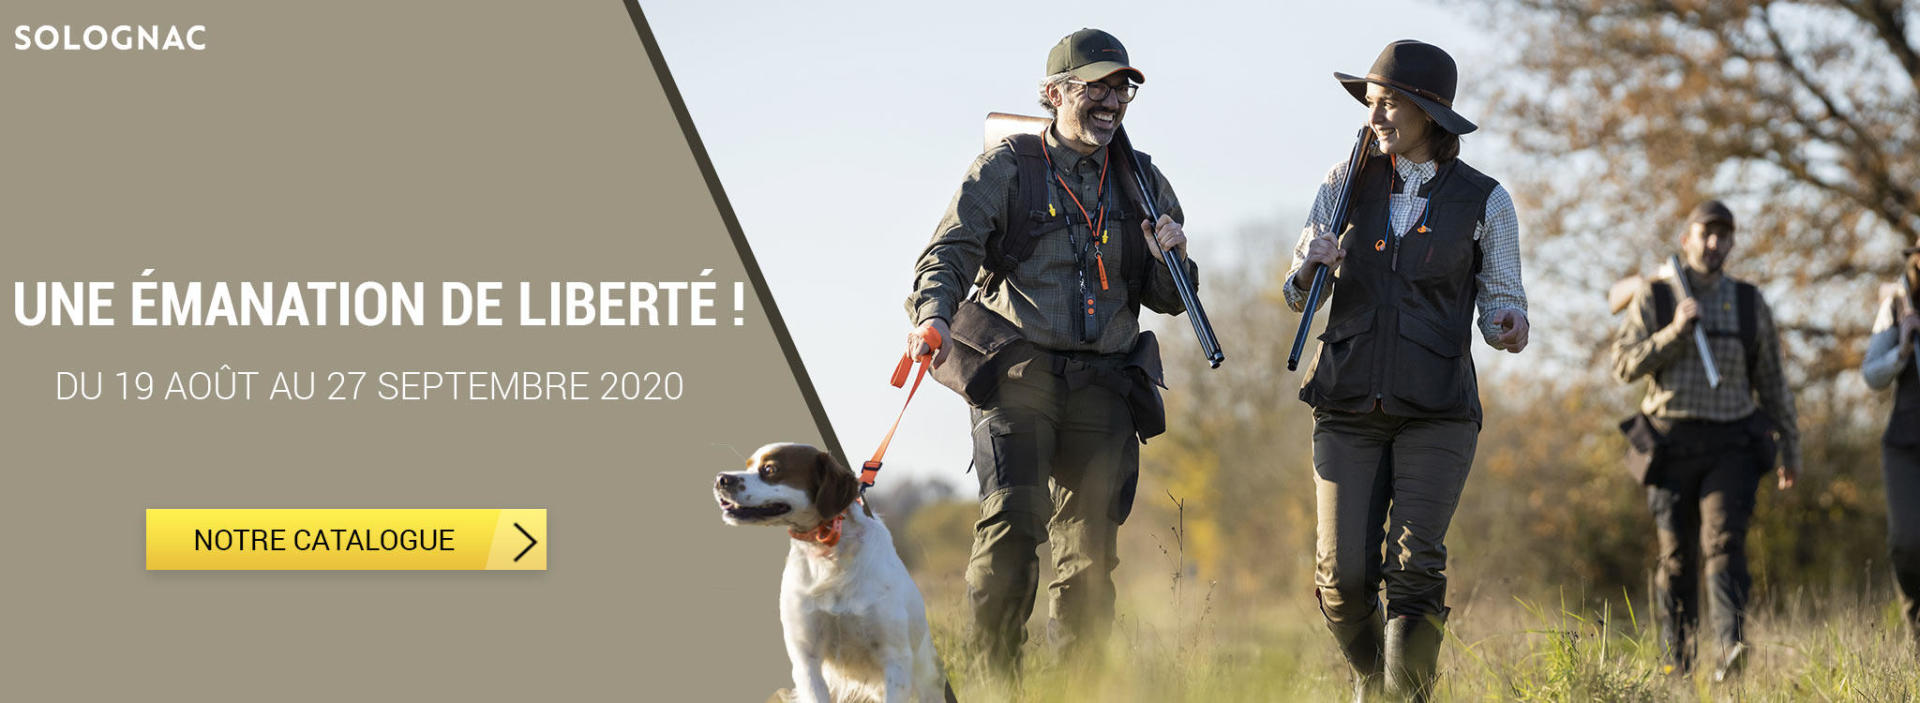 Ouverture chasse